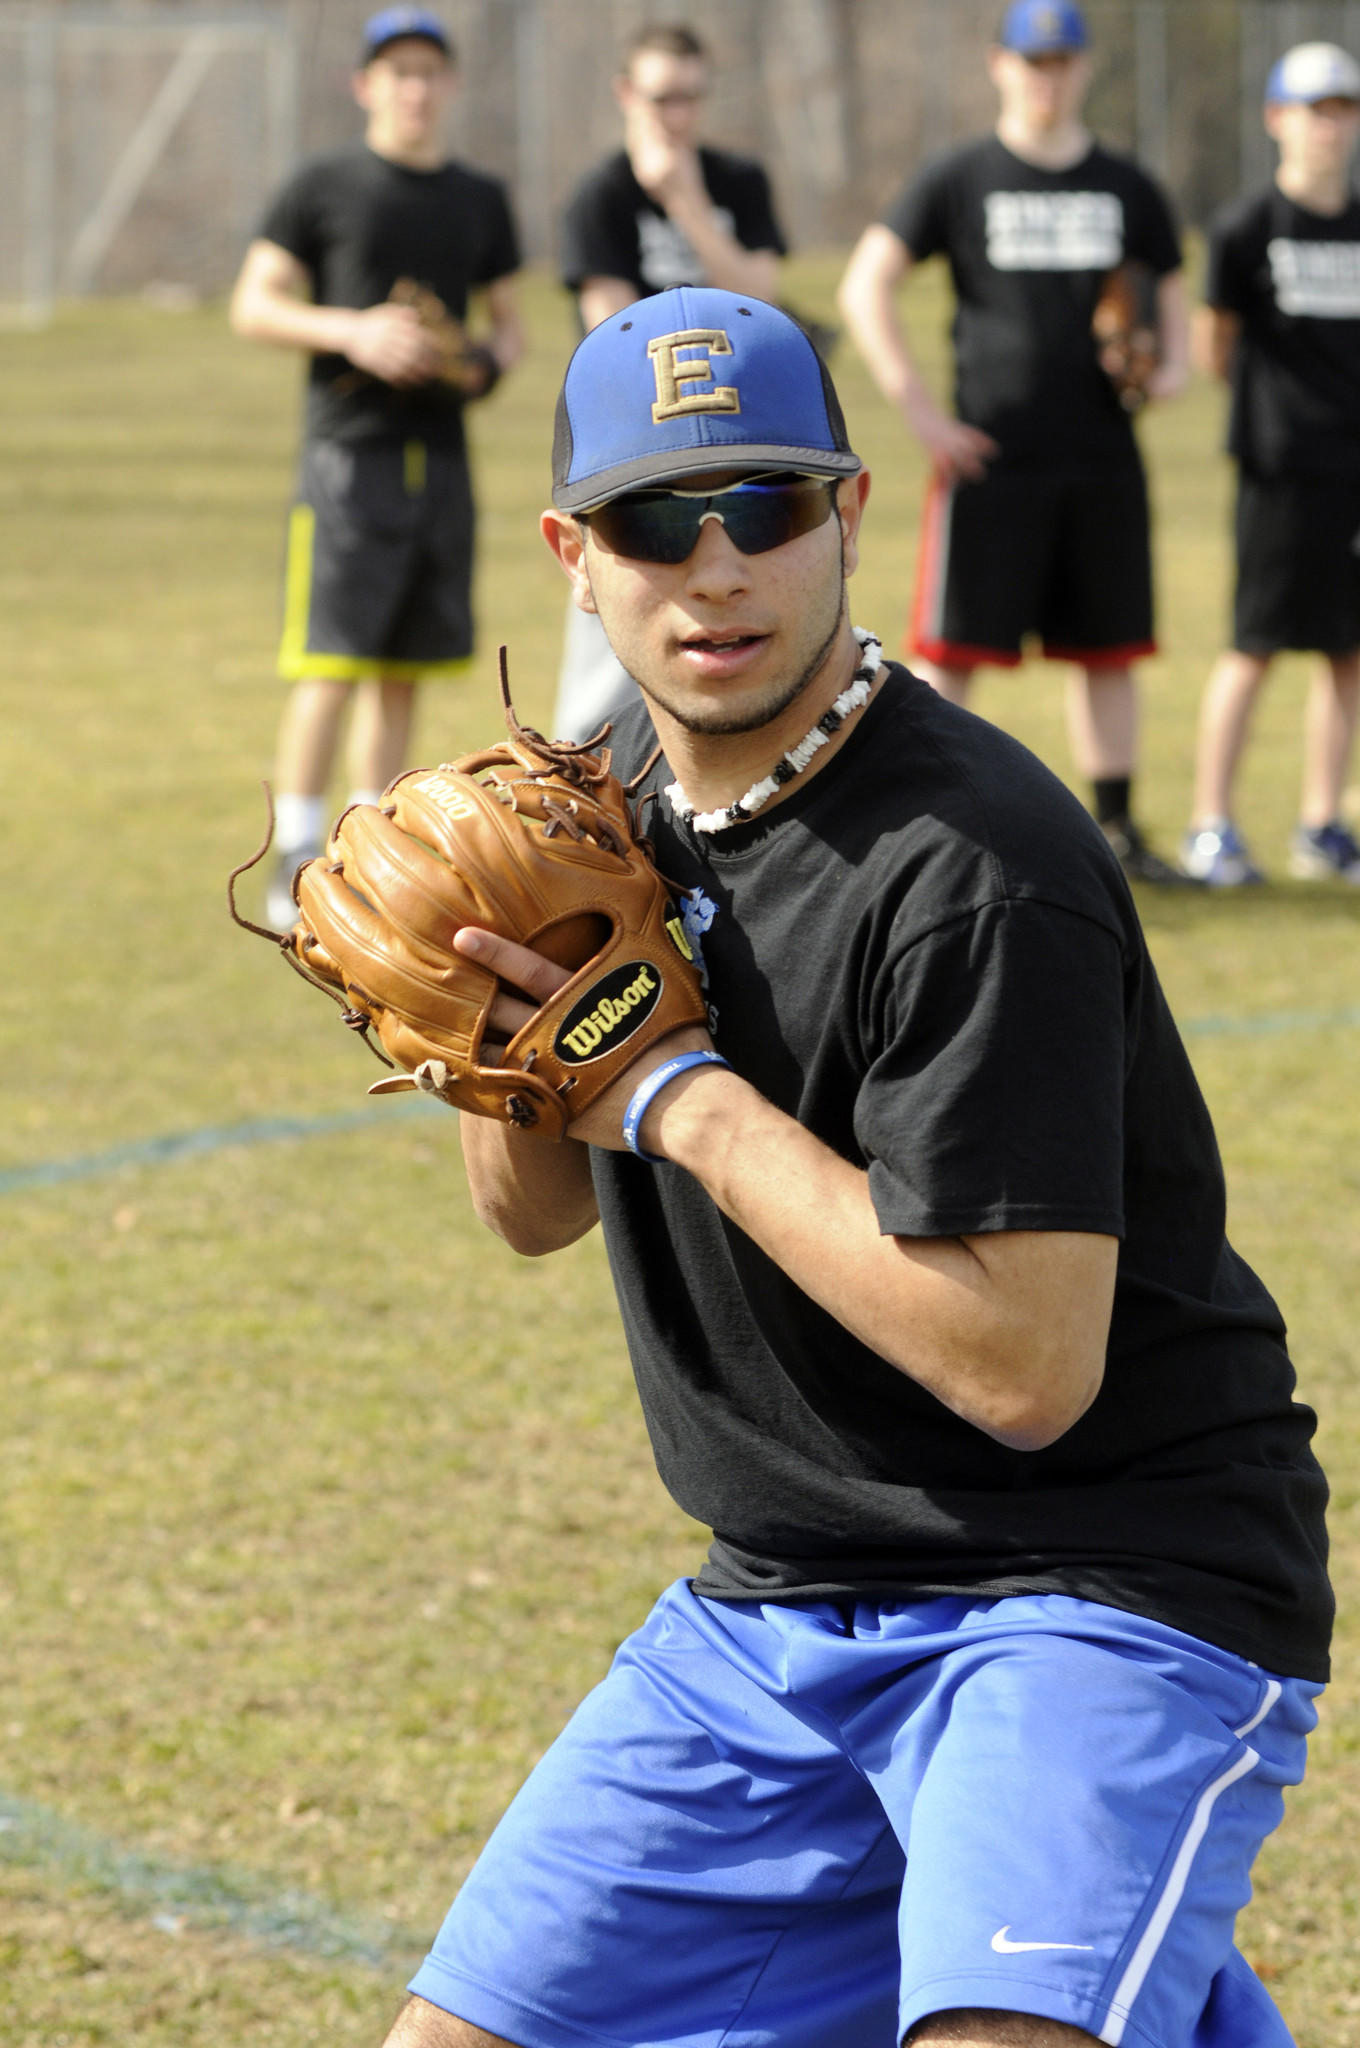 EAST HAMPTON--4/3/14--East Hampton High baseball player Marvin Gorgas at practice at the school April 3.